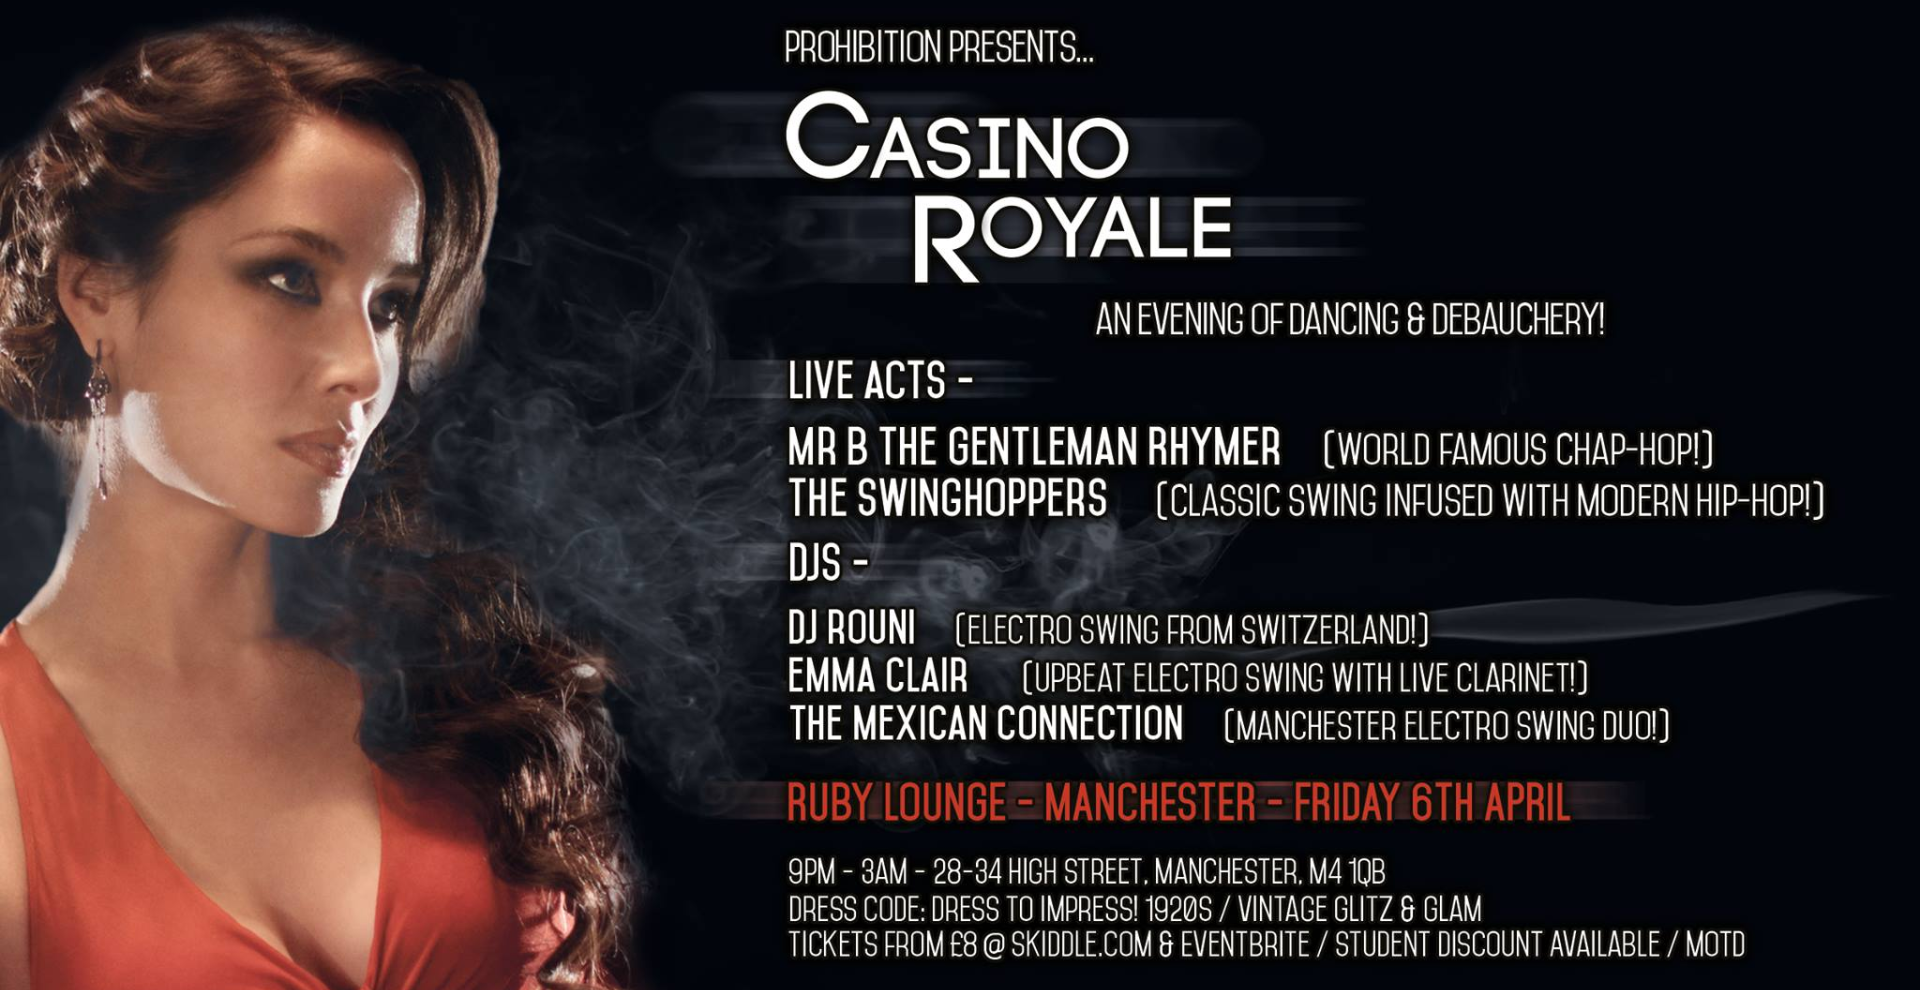 Prohibition: Casino Royale